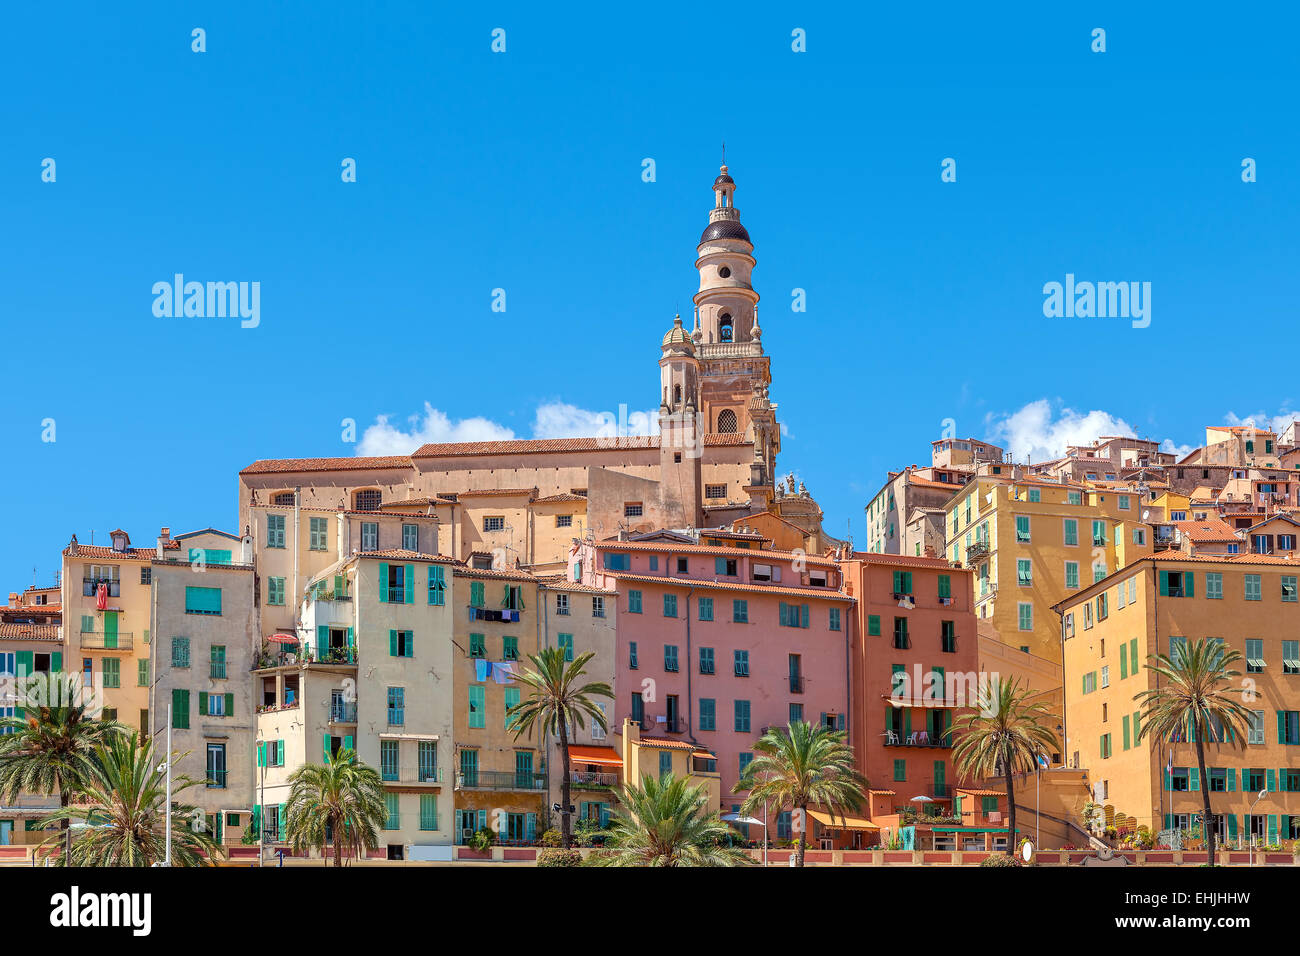 Belfry among colorful houses under blue sky in Menton - small town on French Riviera. - Stock Image